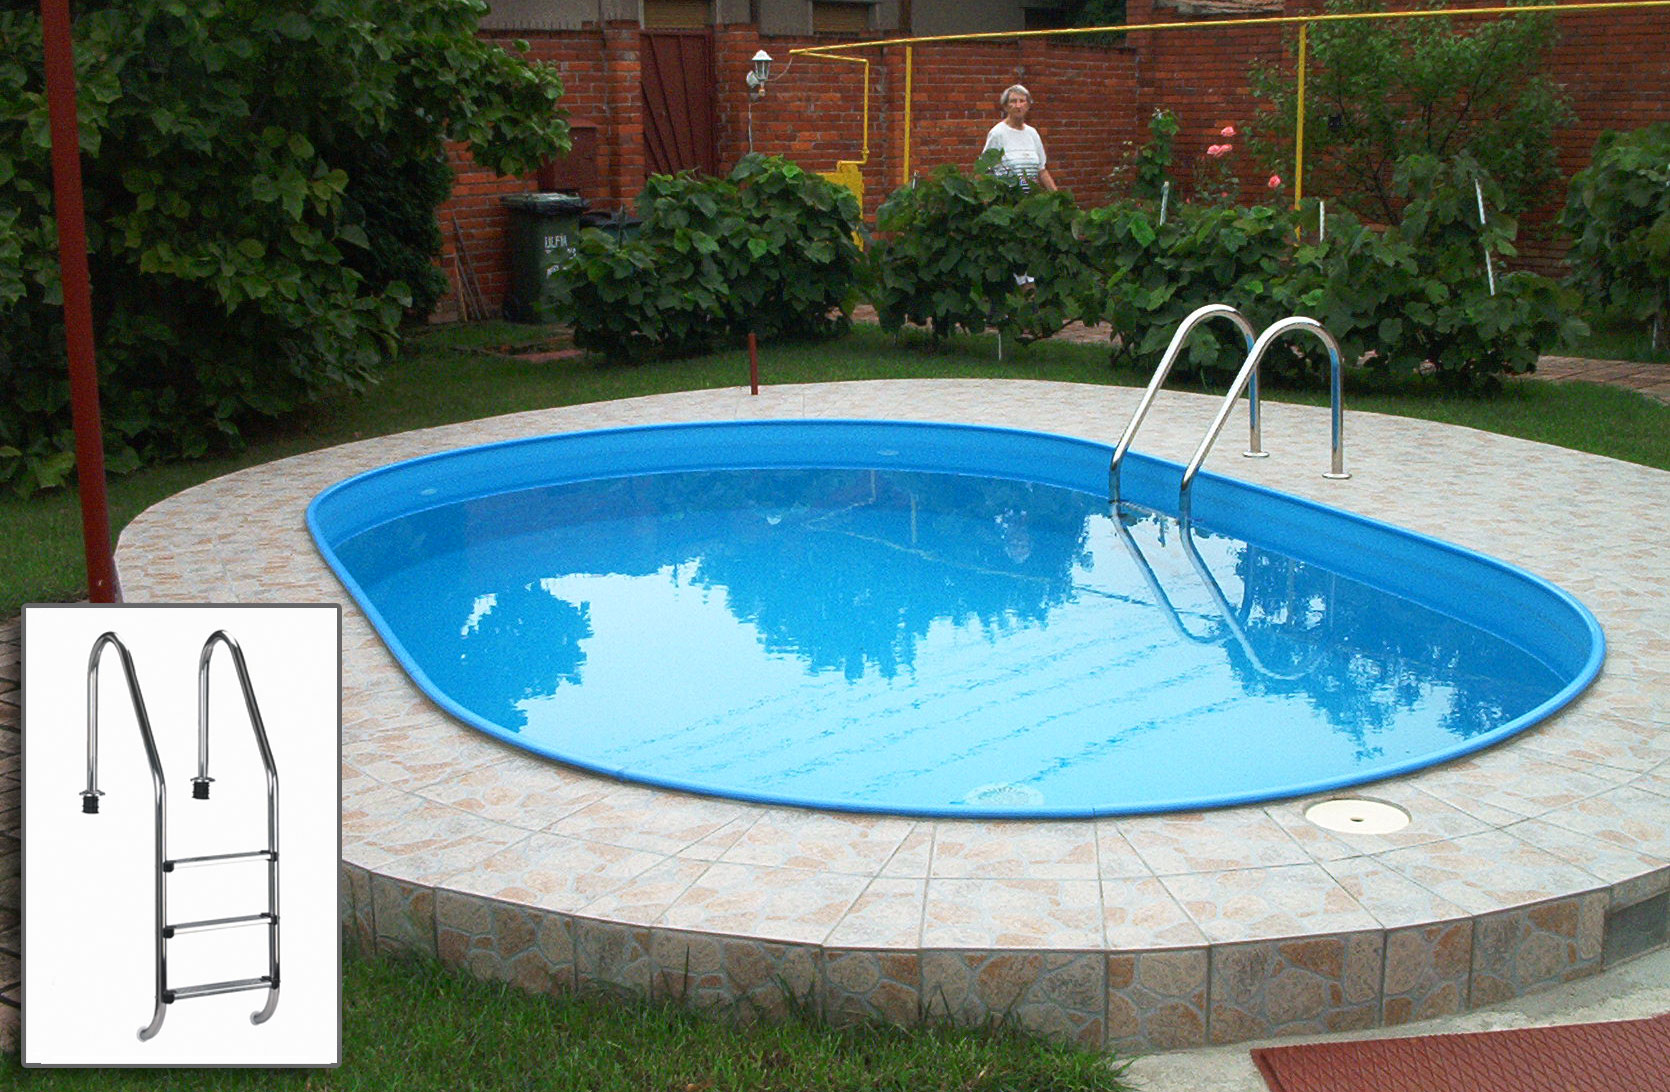 Pool schwimmbecken premium oval set mit sandfilter 6x3 for Stahlwandbecken oval